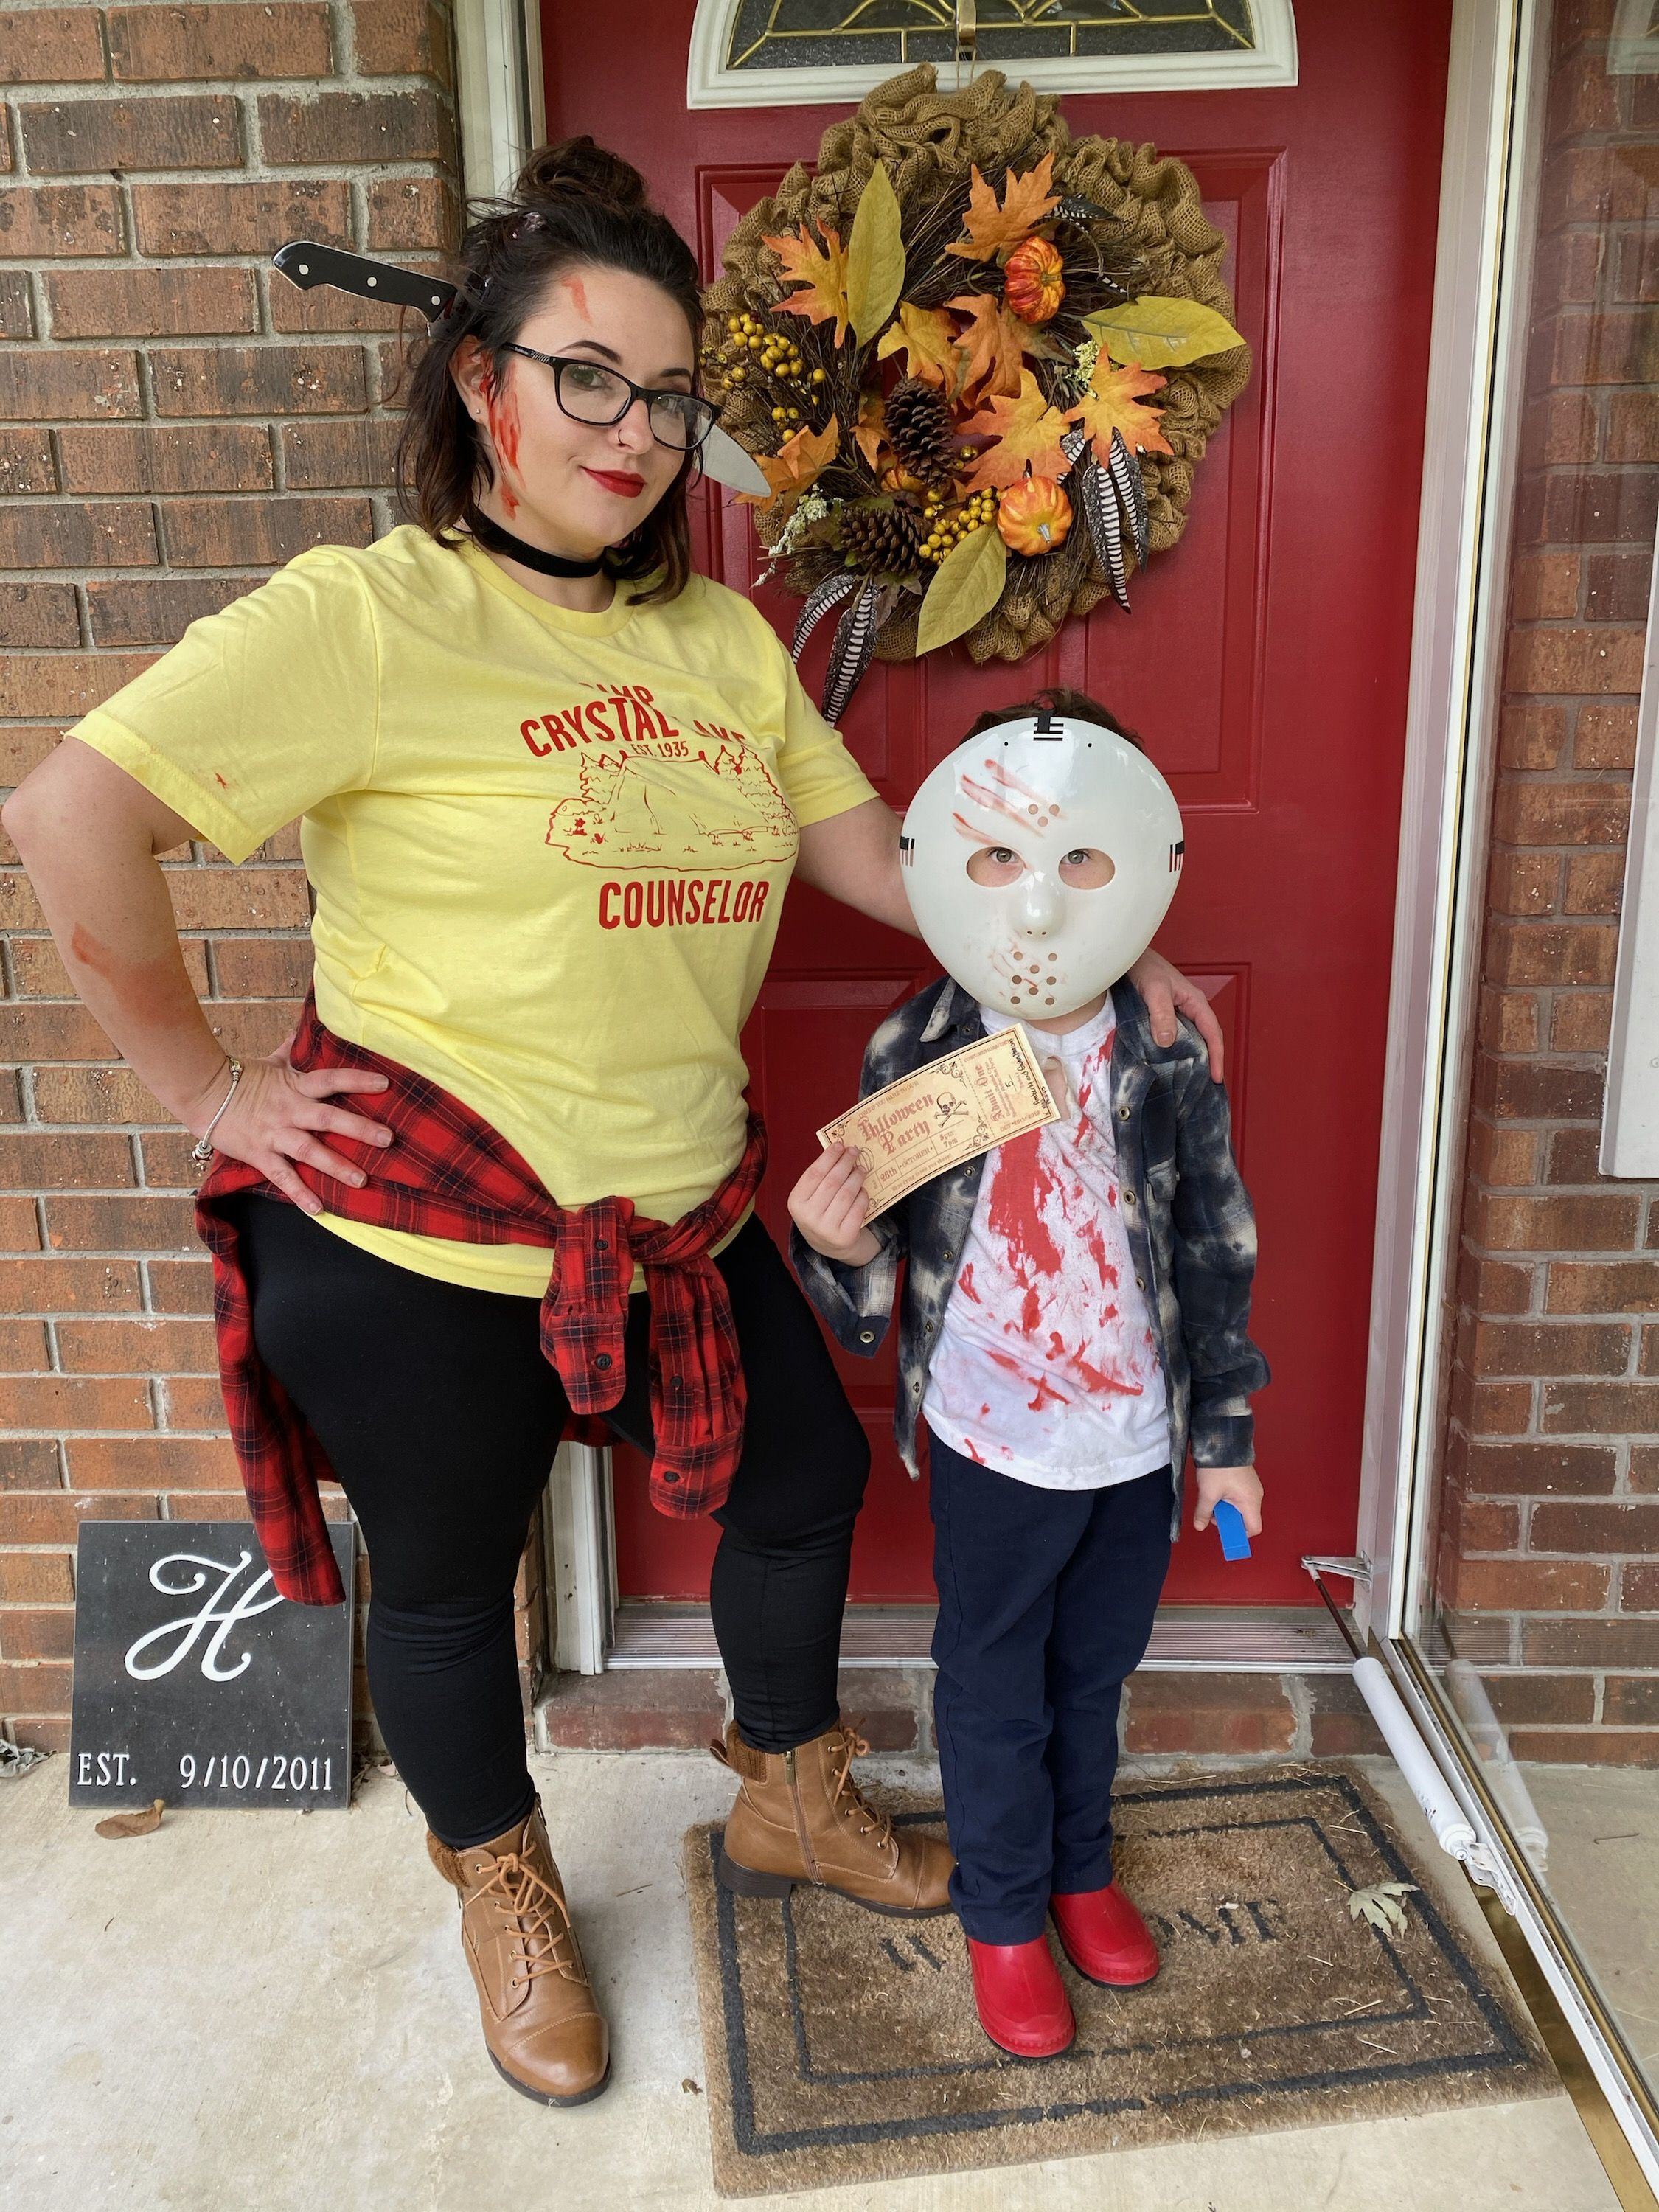 Halloween Events 2020 Crystal Lake Friday the 13th costume | Mother son halloween costumes, Halloween